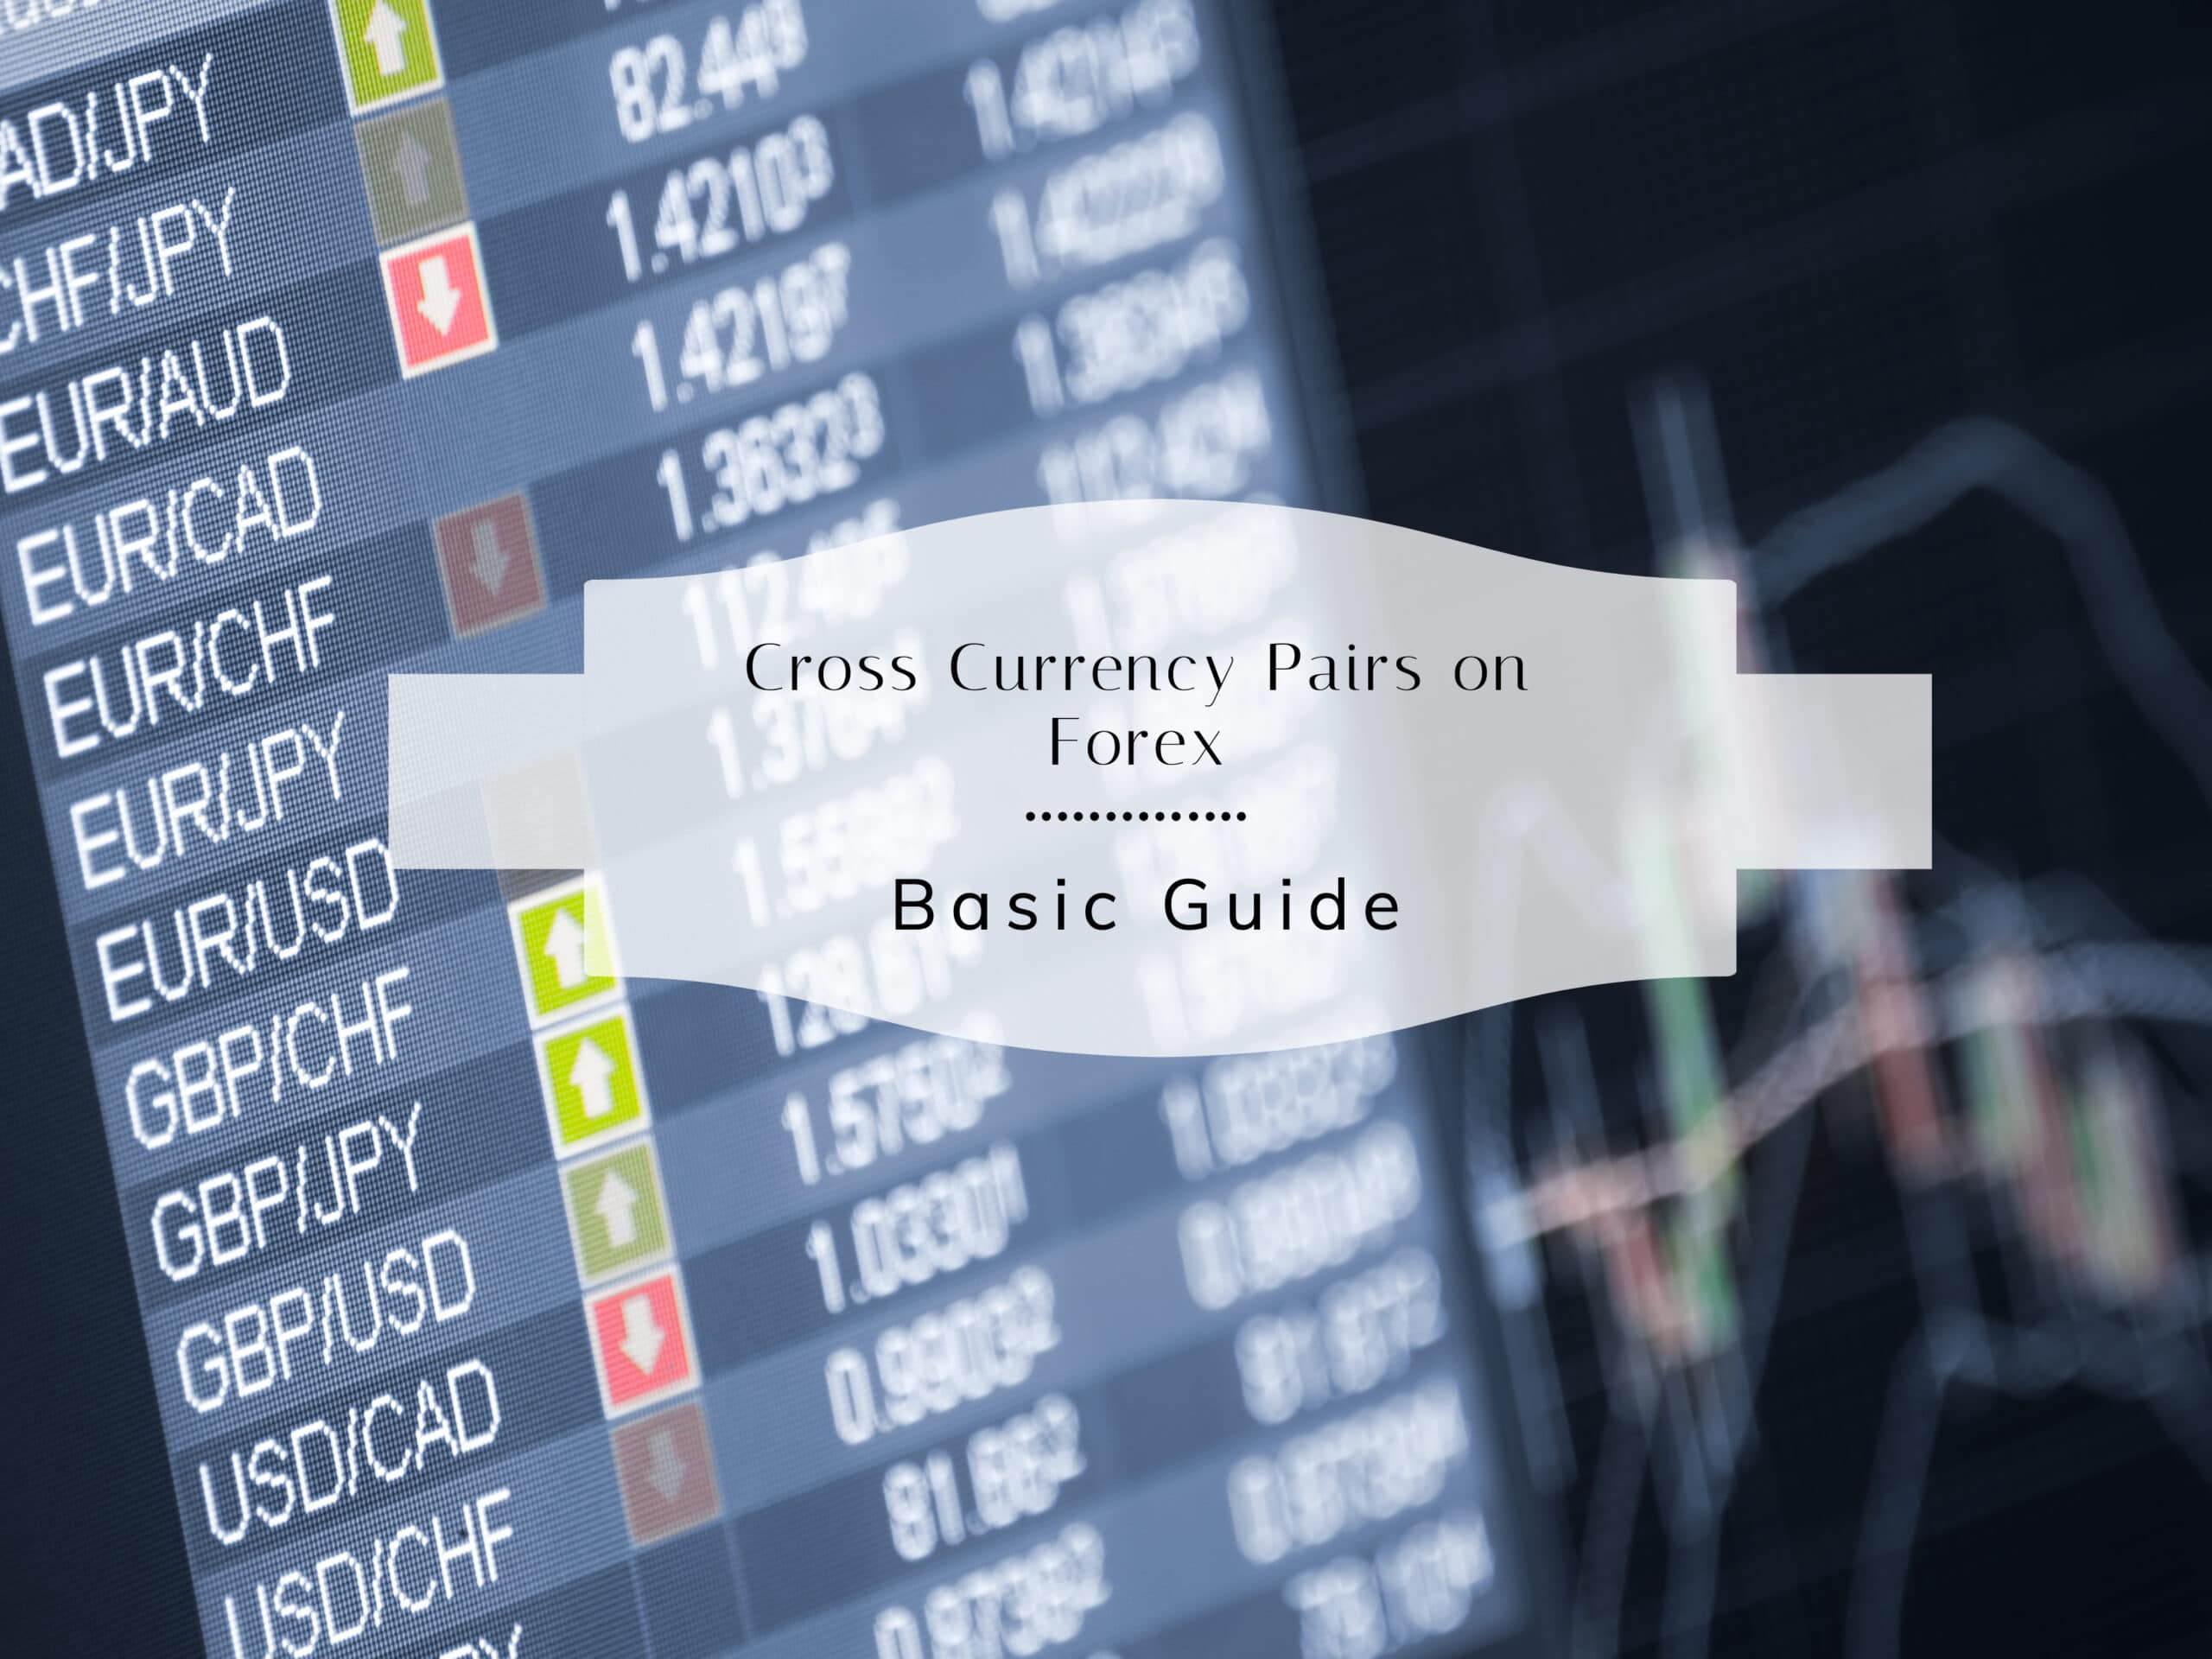 Cross Currency Pairs on Forex